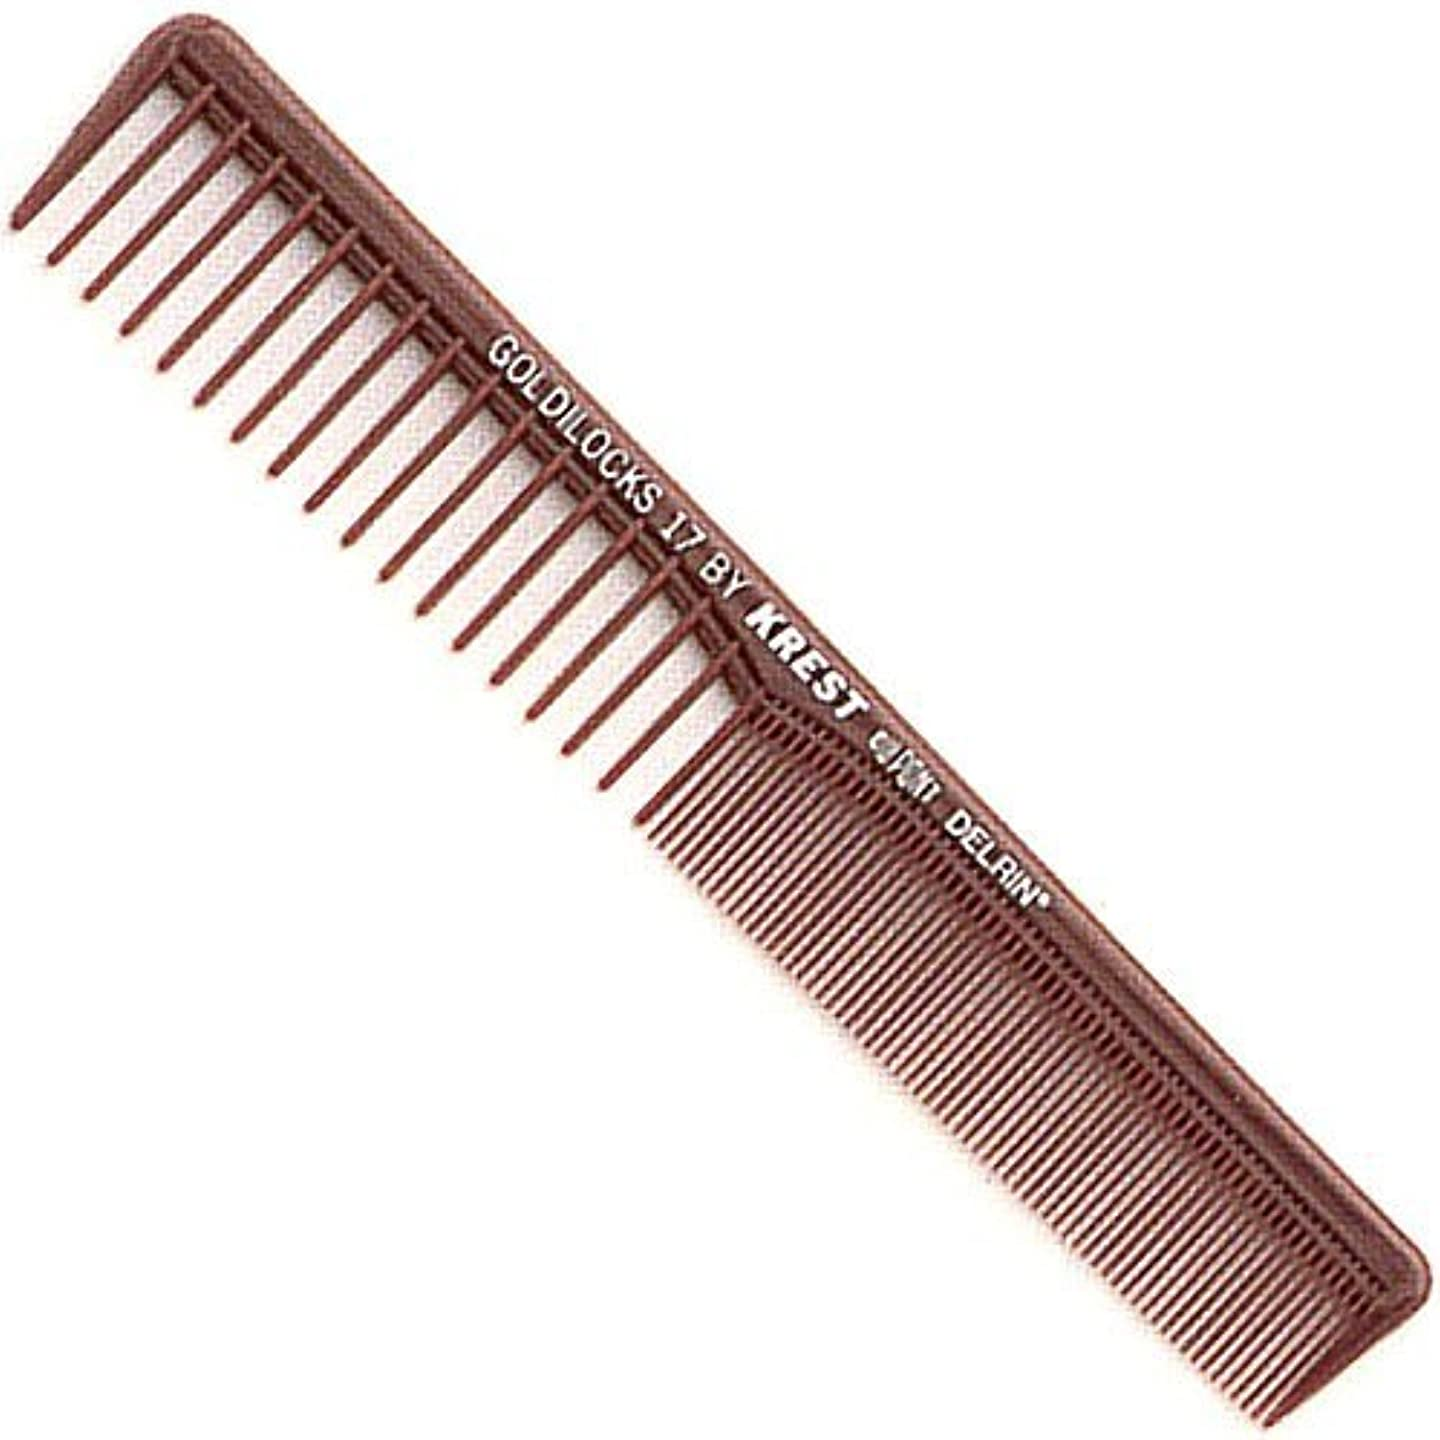 モネキャンペーンやるKrest Combs Goldilocks Space Tooth Fine Tooth Styler Comb 7